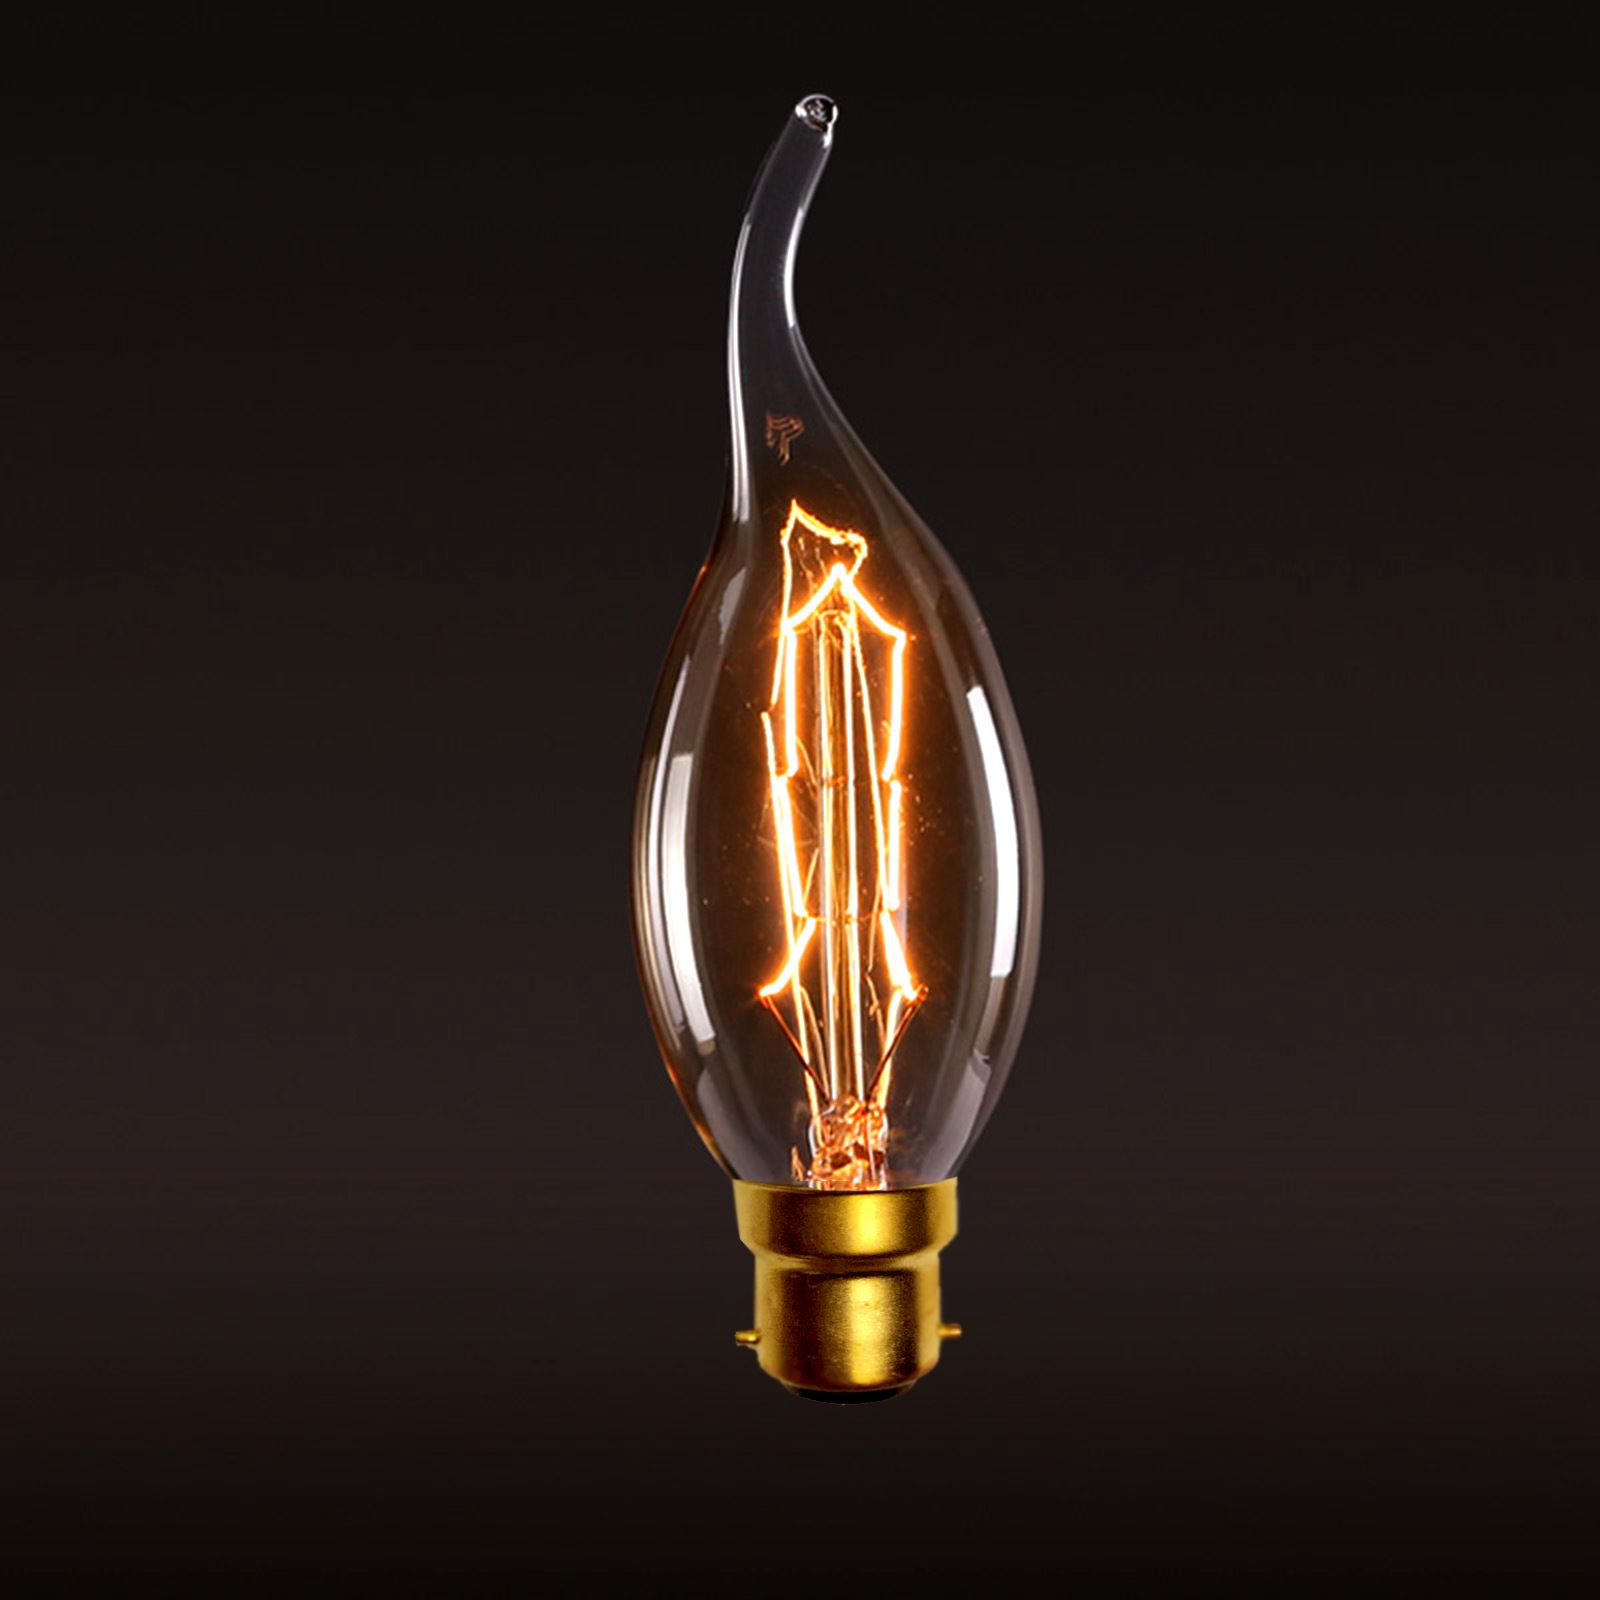 E27 E14 Dimmable B22 E27 E14 40w Edison Bulb Retro Filament Lamp